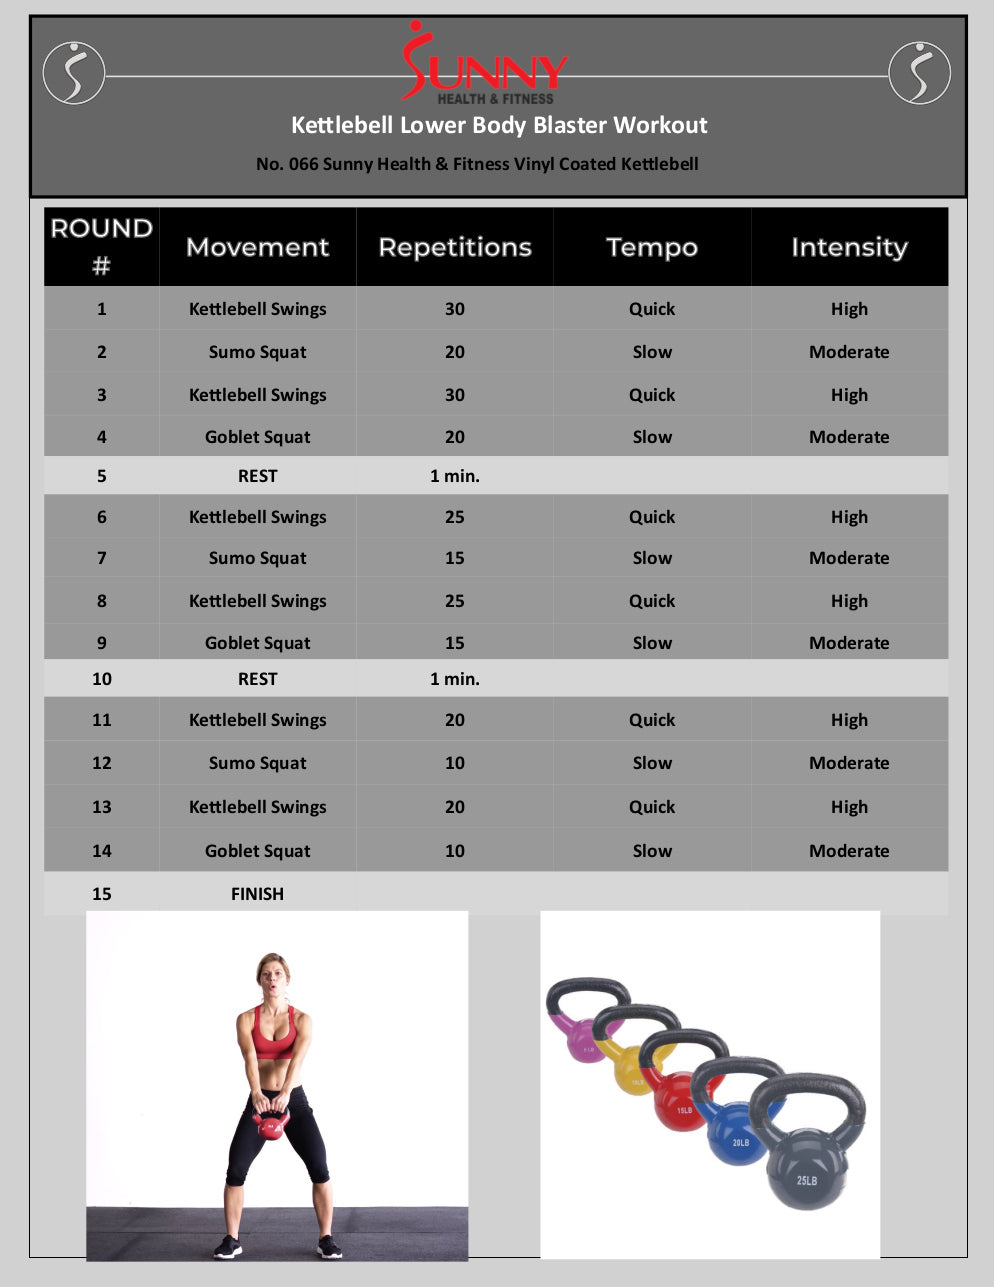 Kettlebell Lower Body Blaster Workout